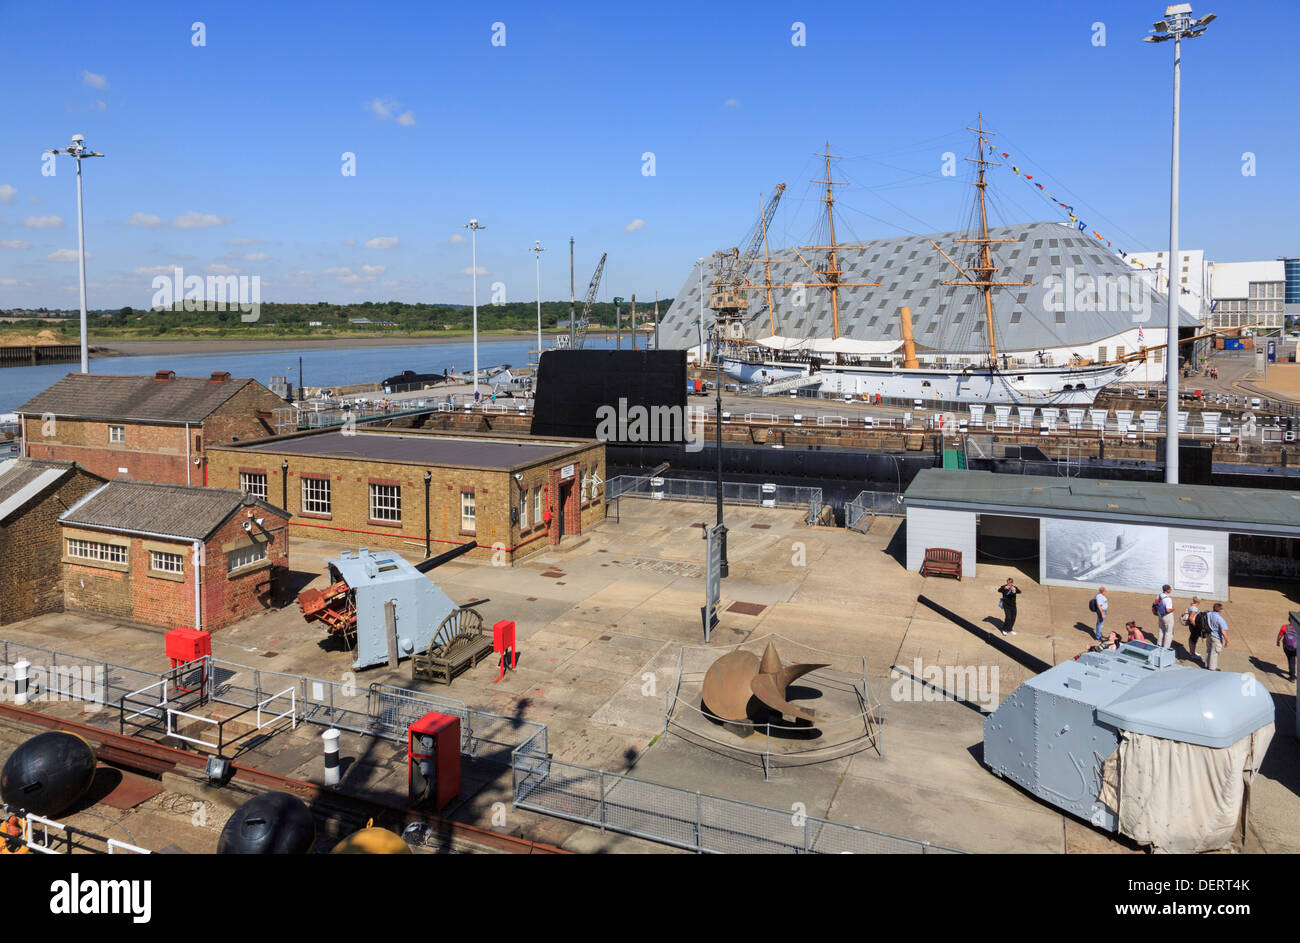 High view from HMS Cavalier at maritime heritage museum in Historic Dockyard at Chatham, Kent, England, UK, Britain - Stock Image